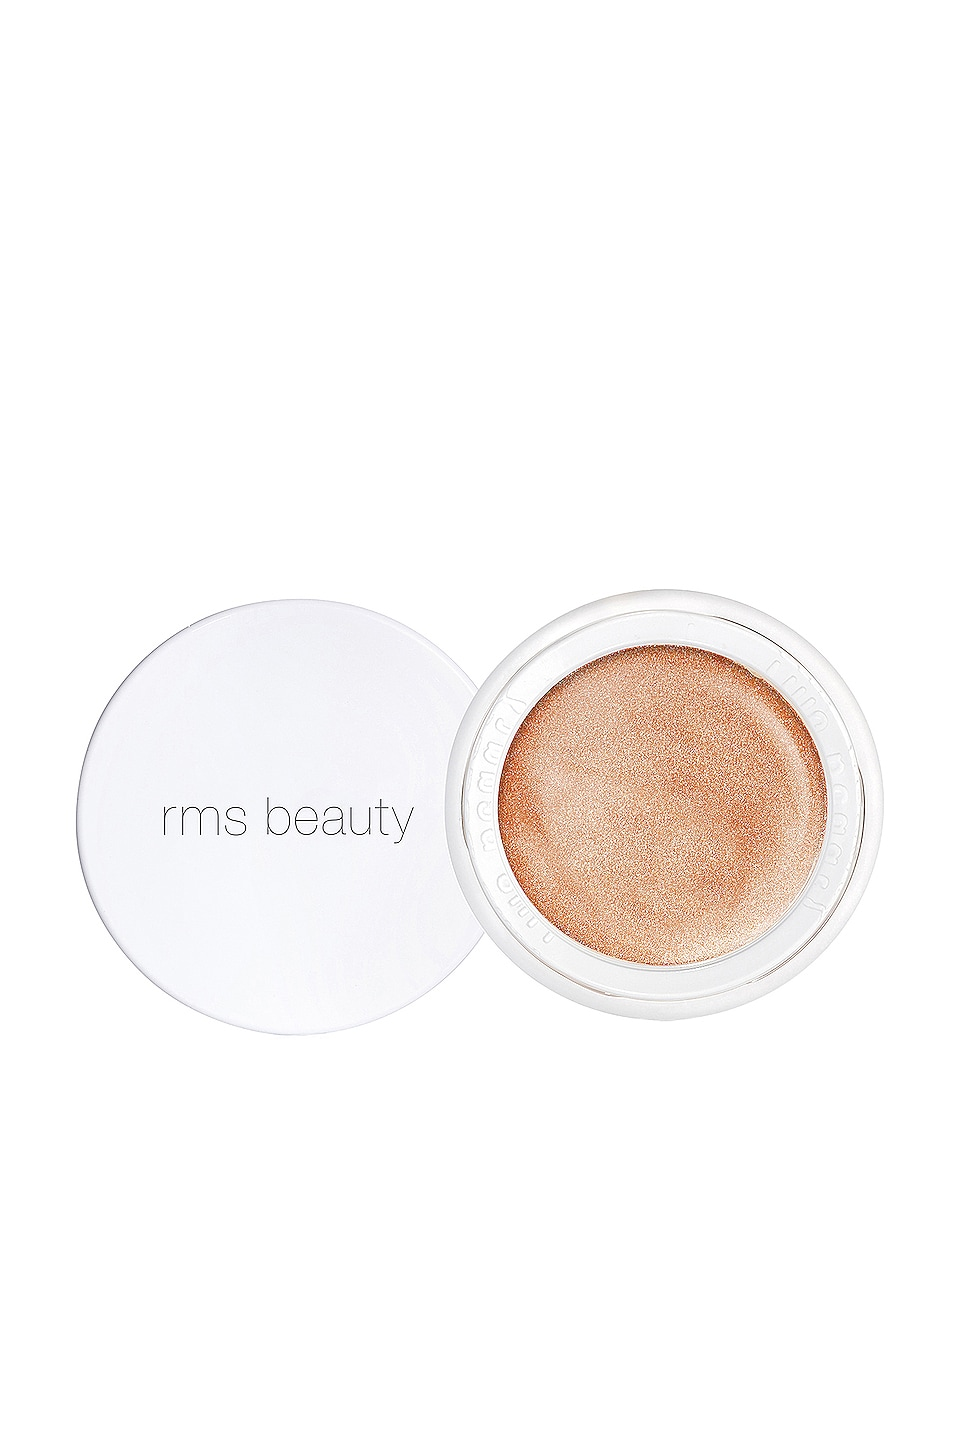 RMS Beauty Master Mixer in All